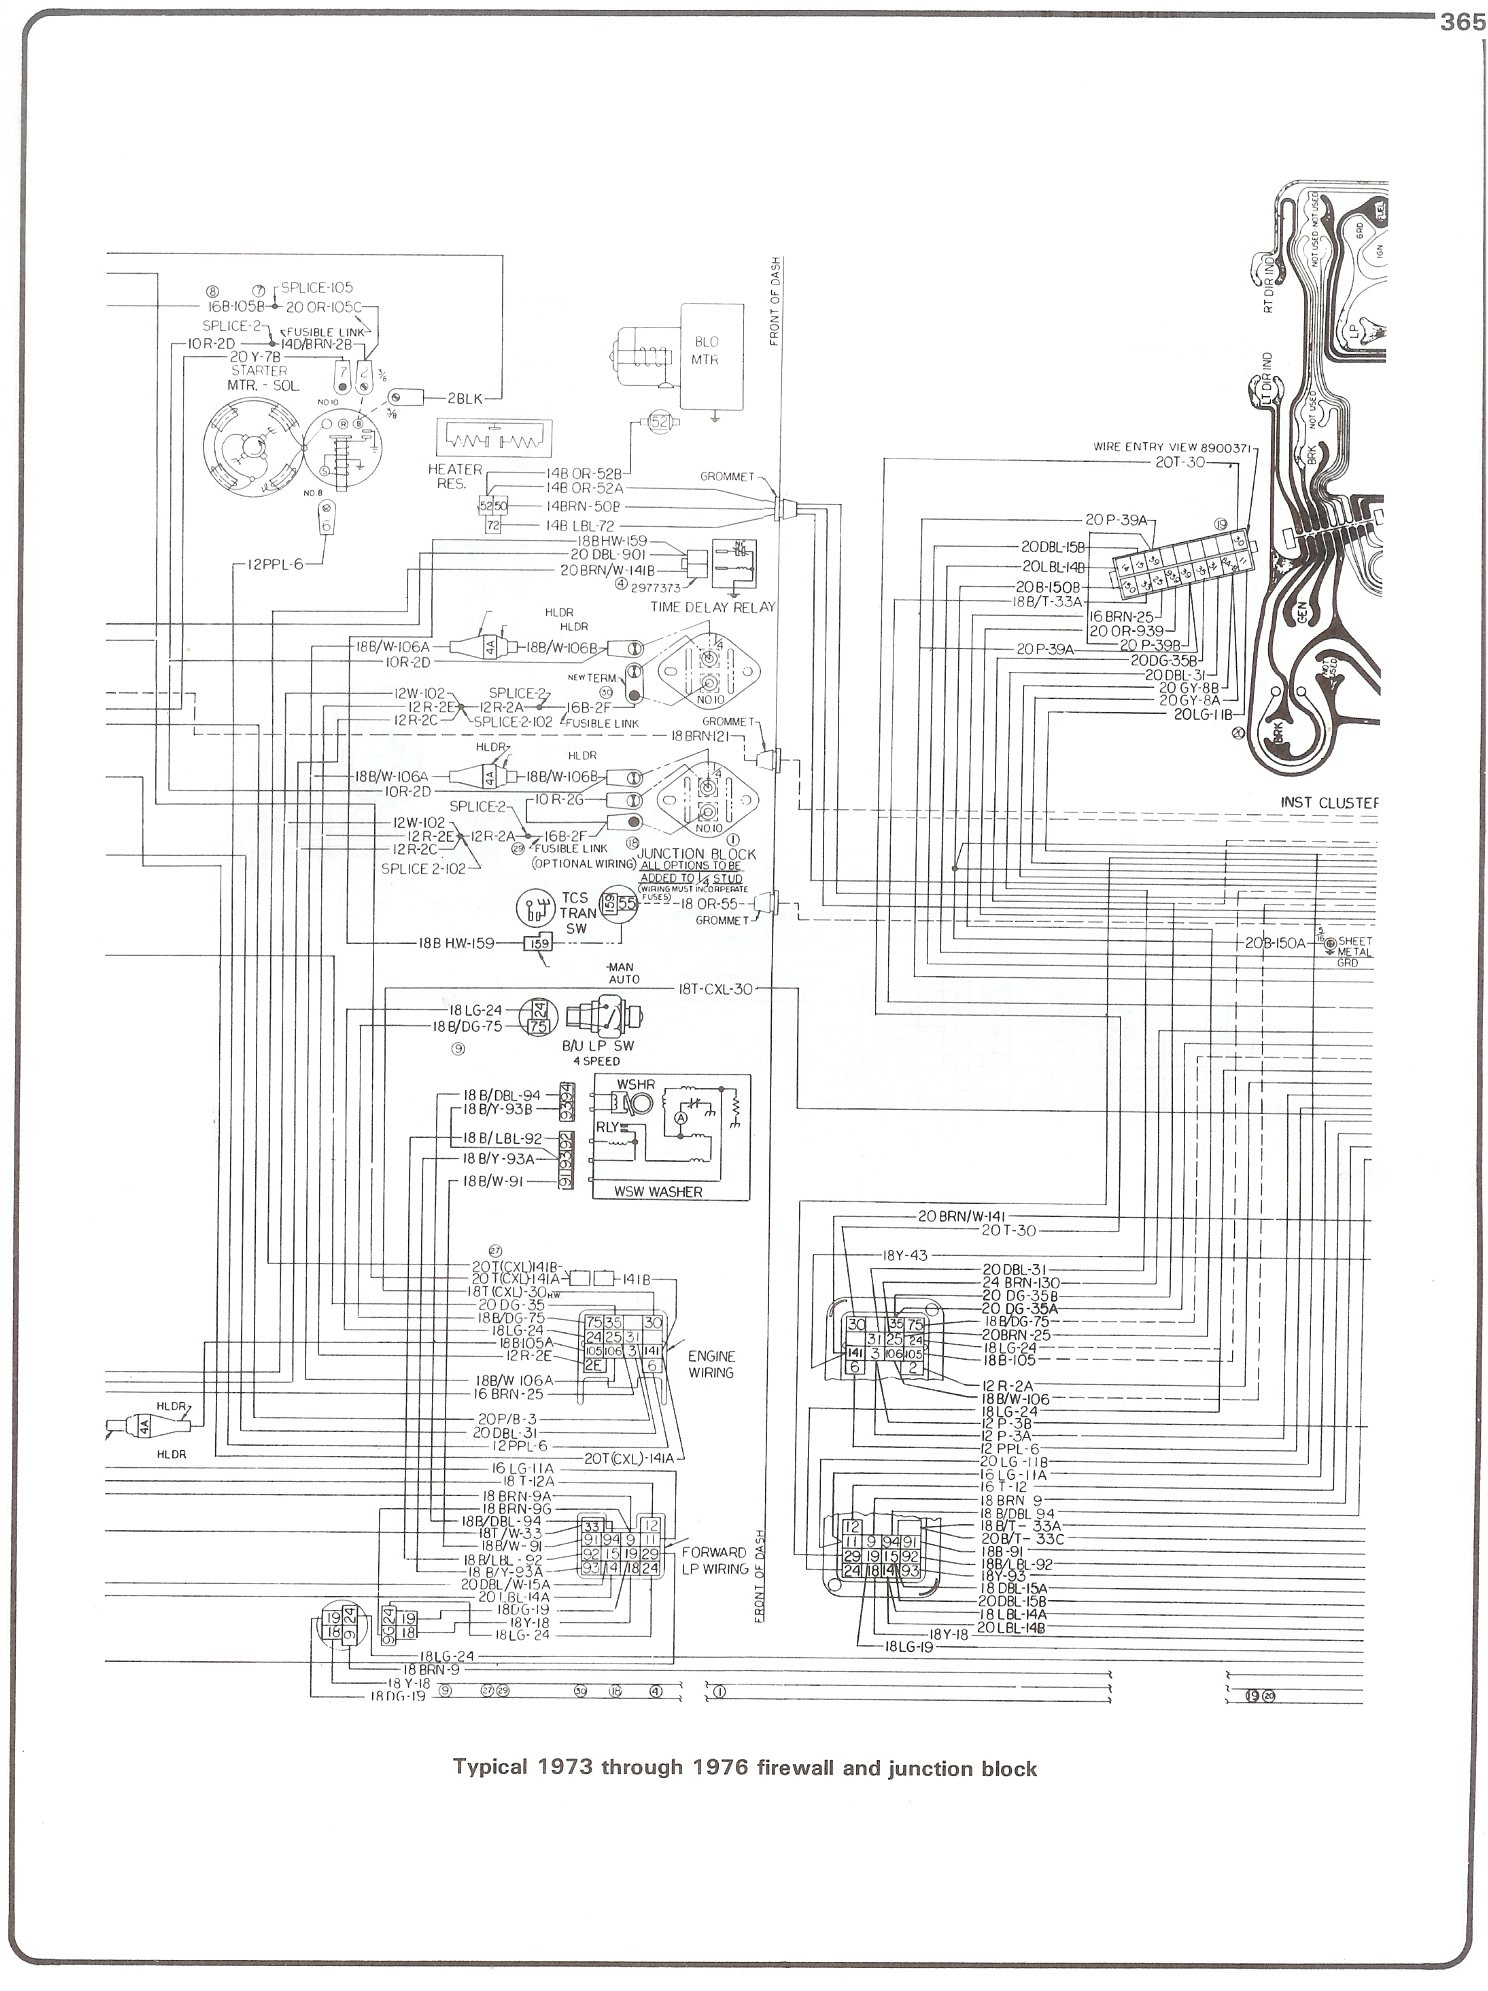 Complete 73 87 Wiring Diagrams 1982 Ford Mustang Engine Diagram 76 Firewall Junction